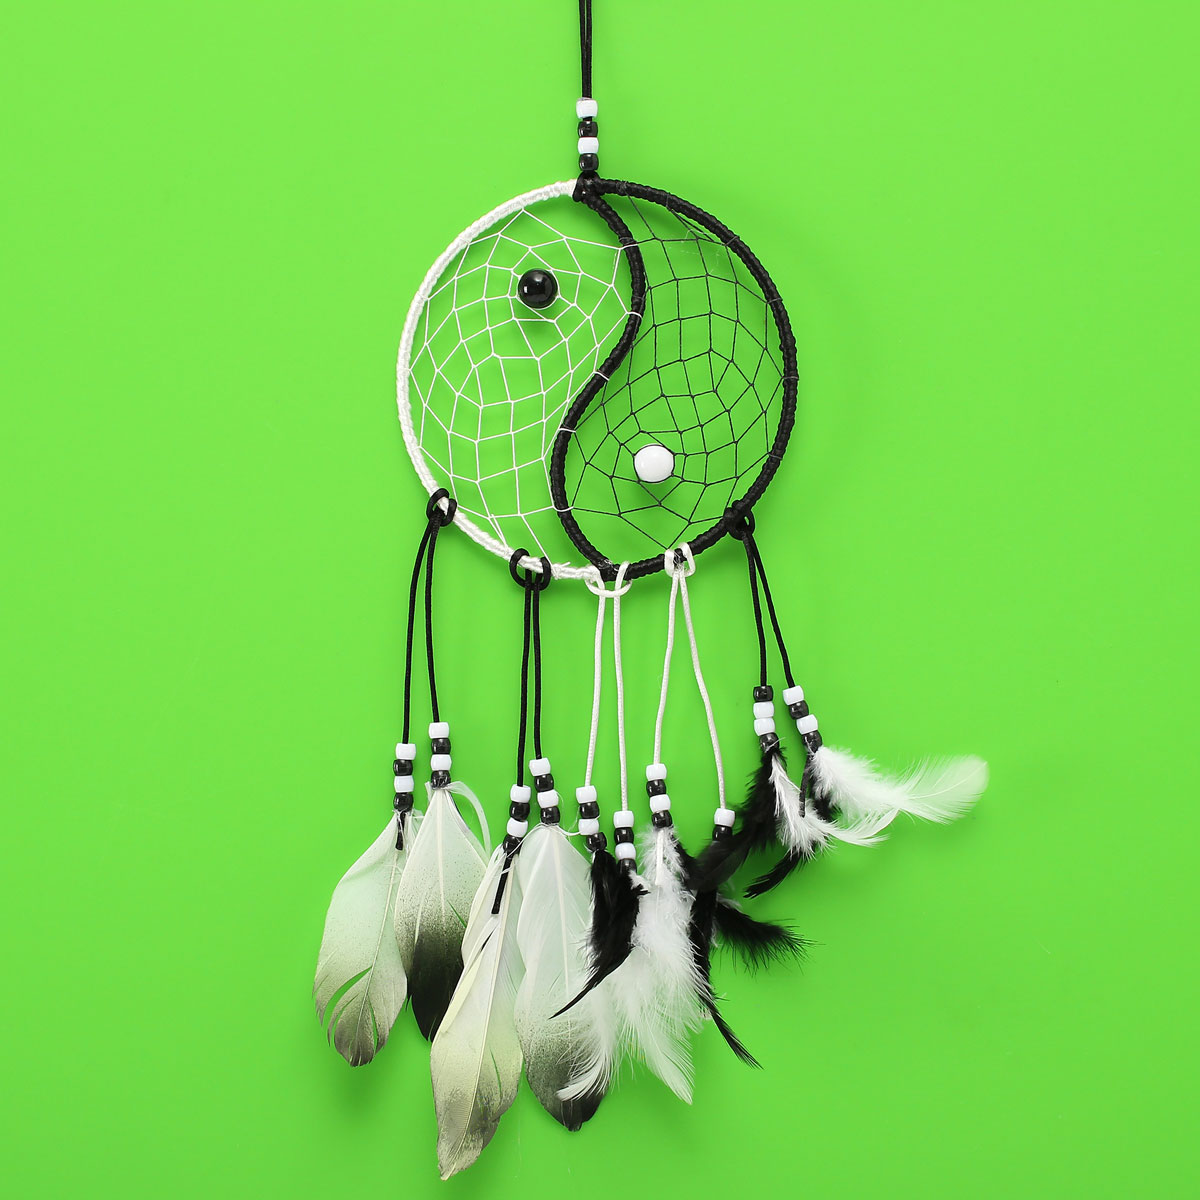 Dreamcatcher Chinese Taiji Dream Catcher Room Wall Window Hanging Ornaments Decoration Decor Gifts